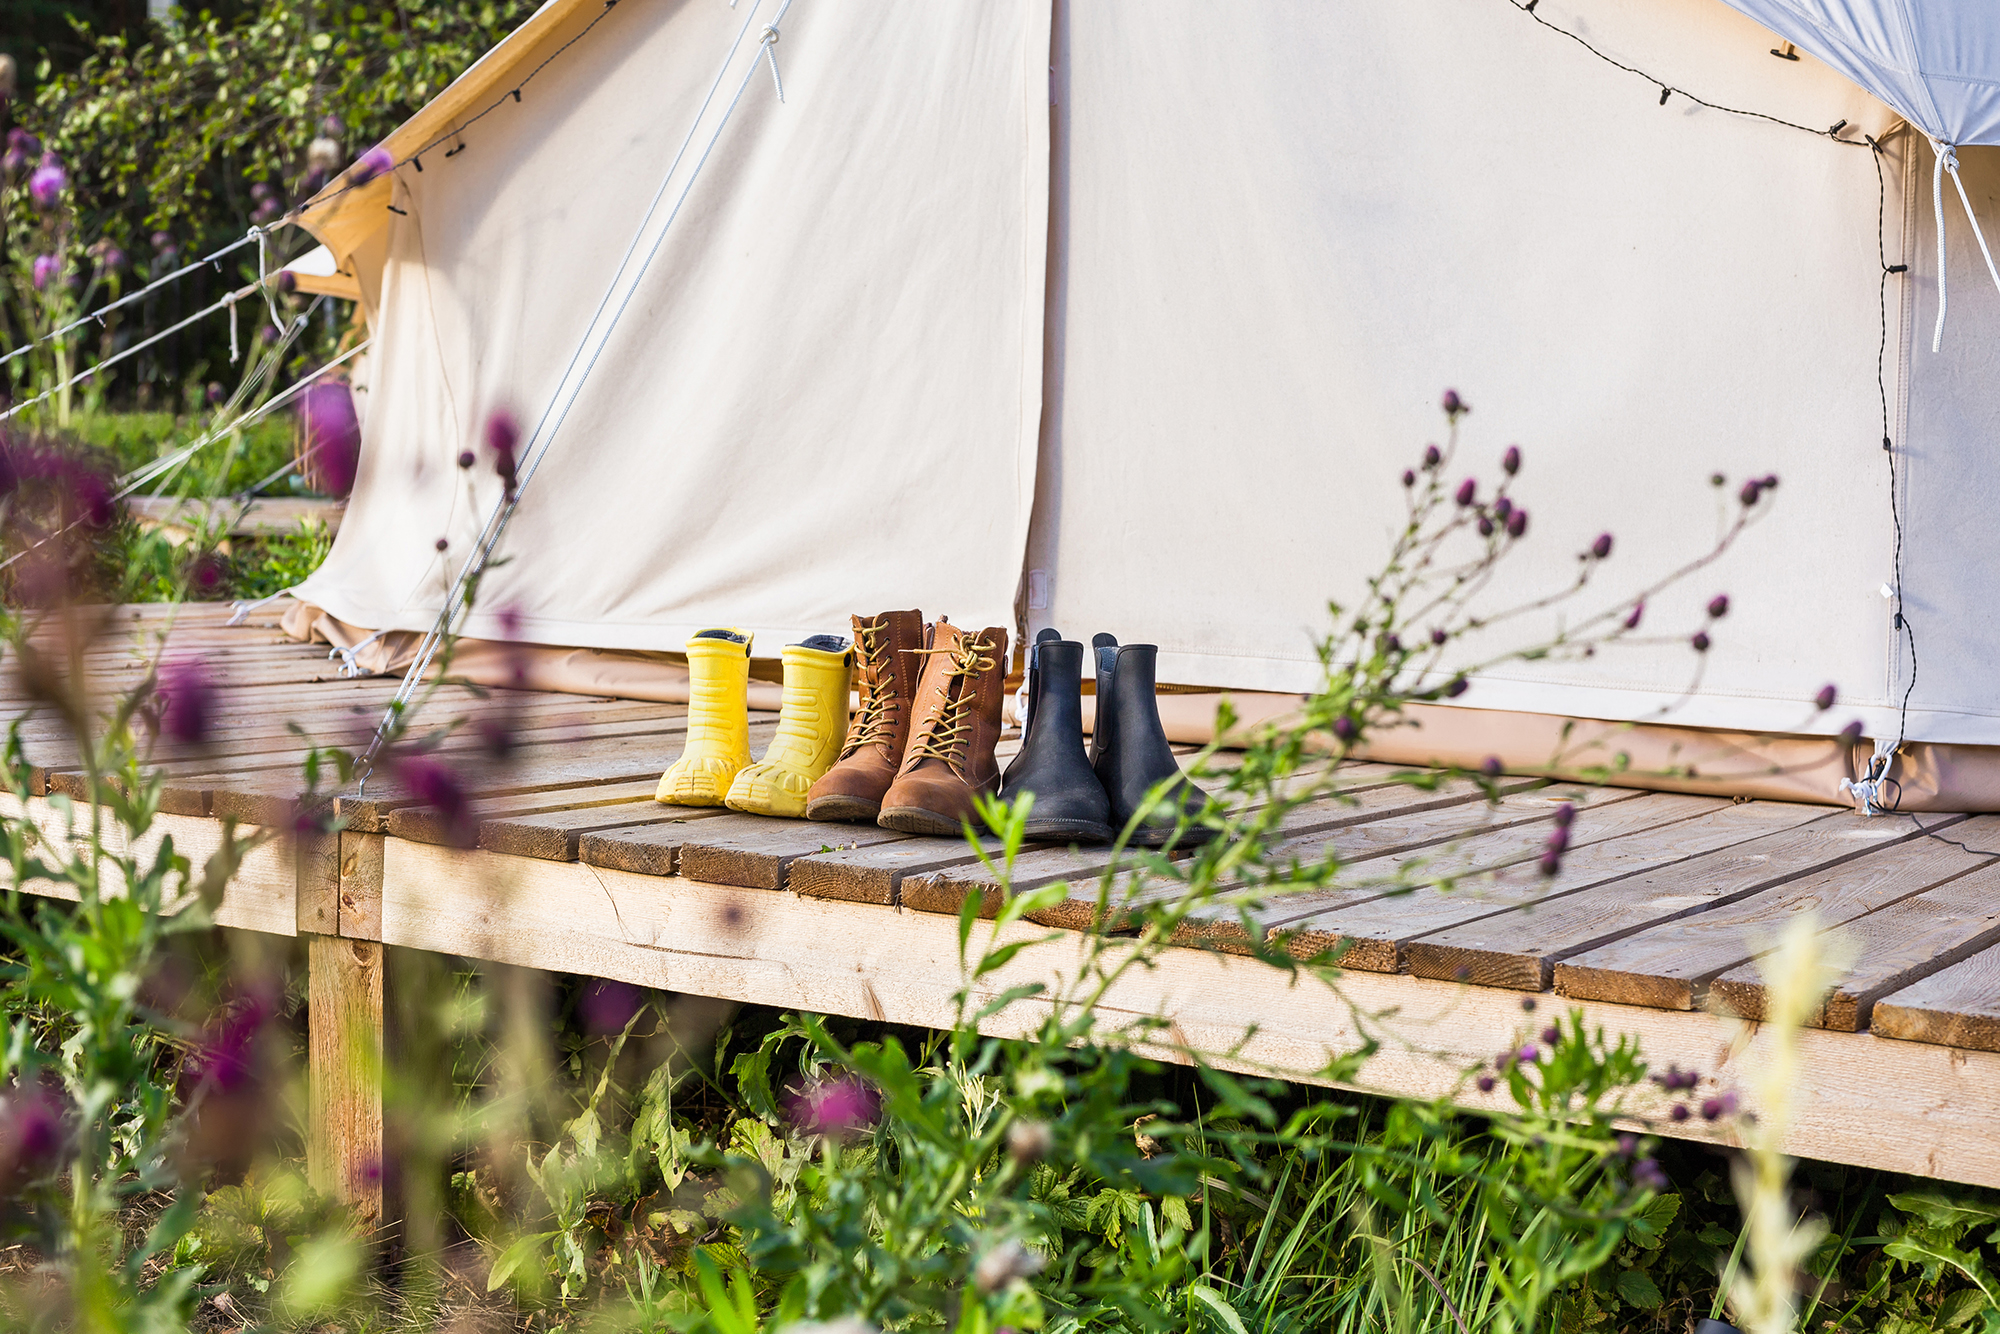 Bell tent with decking with a row of outdoor boots and bright yellow wellies lined up in front of the tent entrance